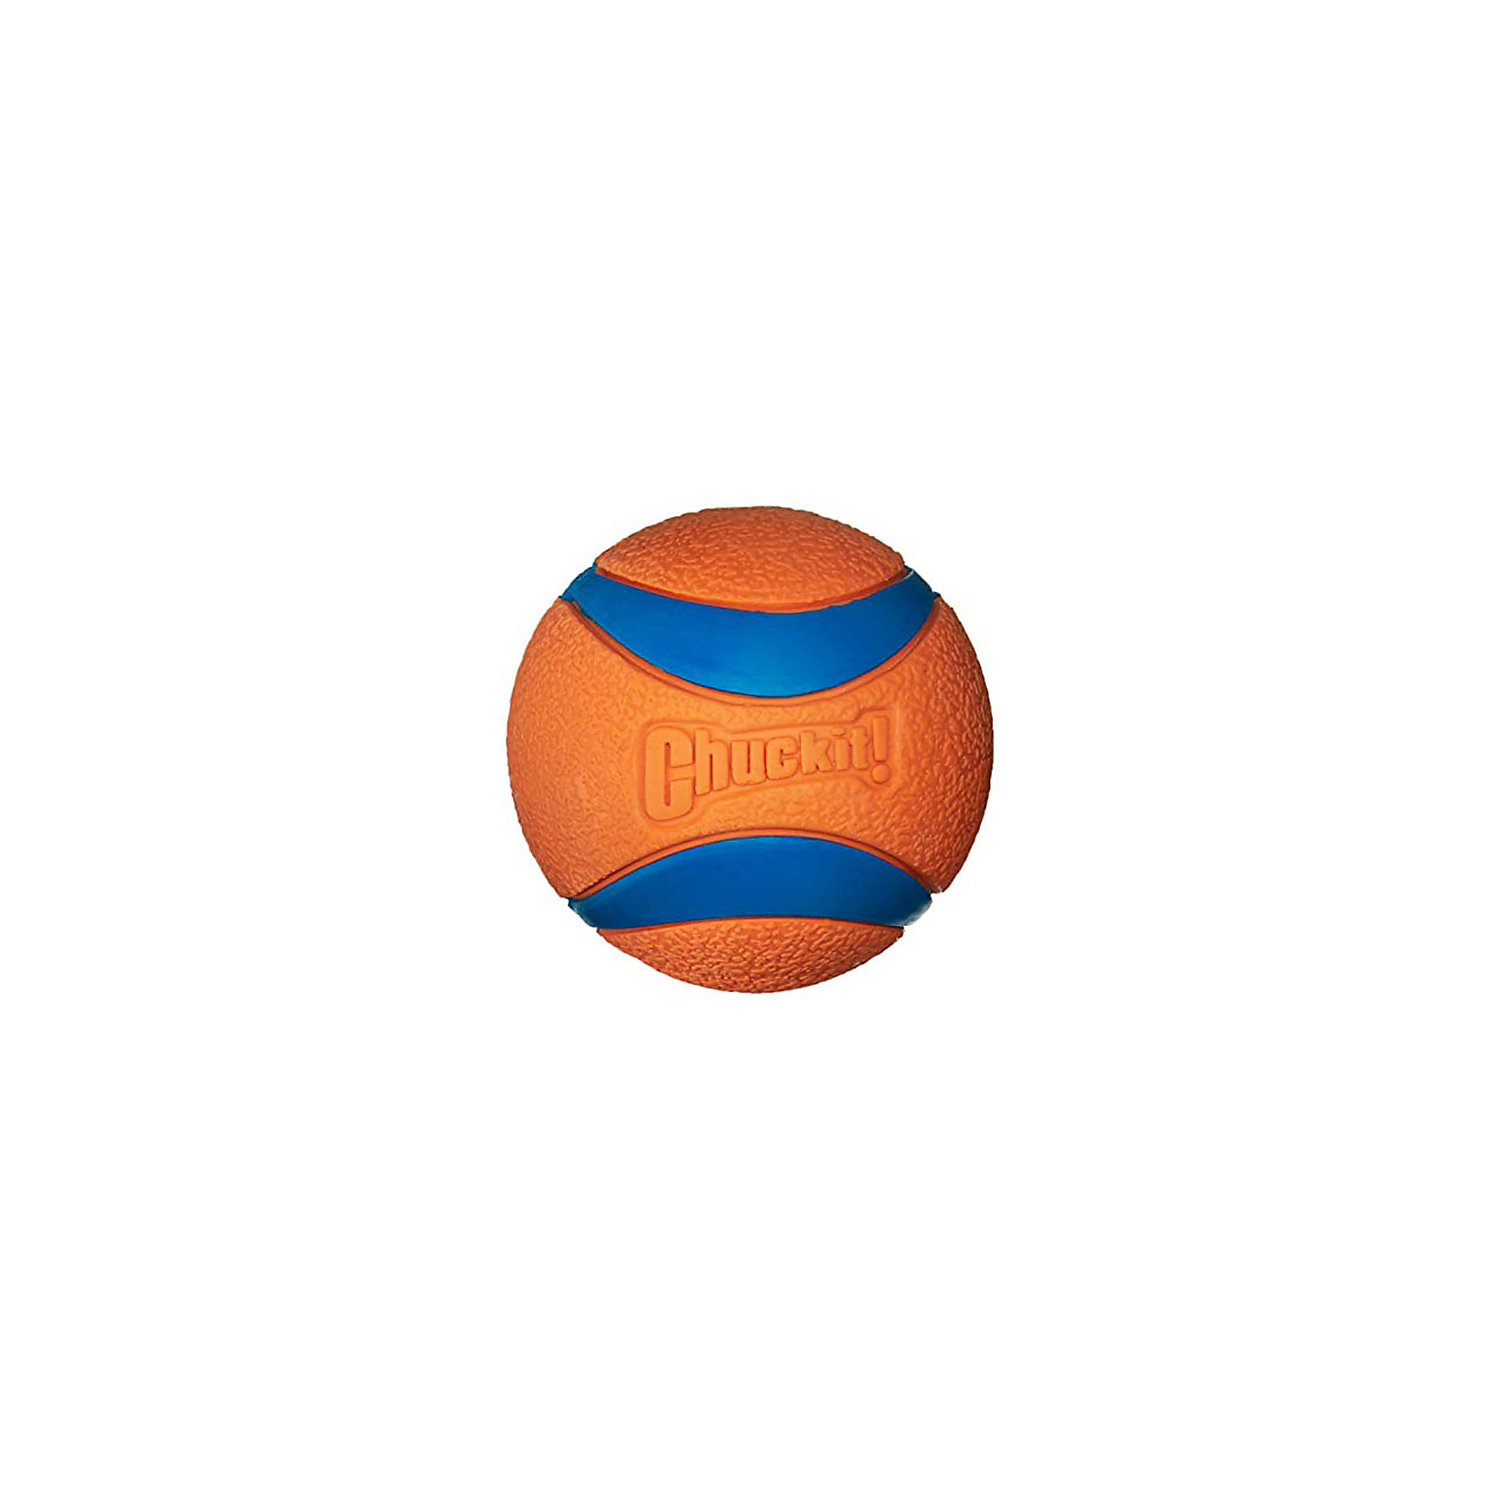 Chuckit! Ultra Ball Dog Toy 1-pack